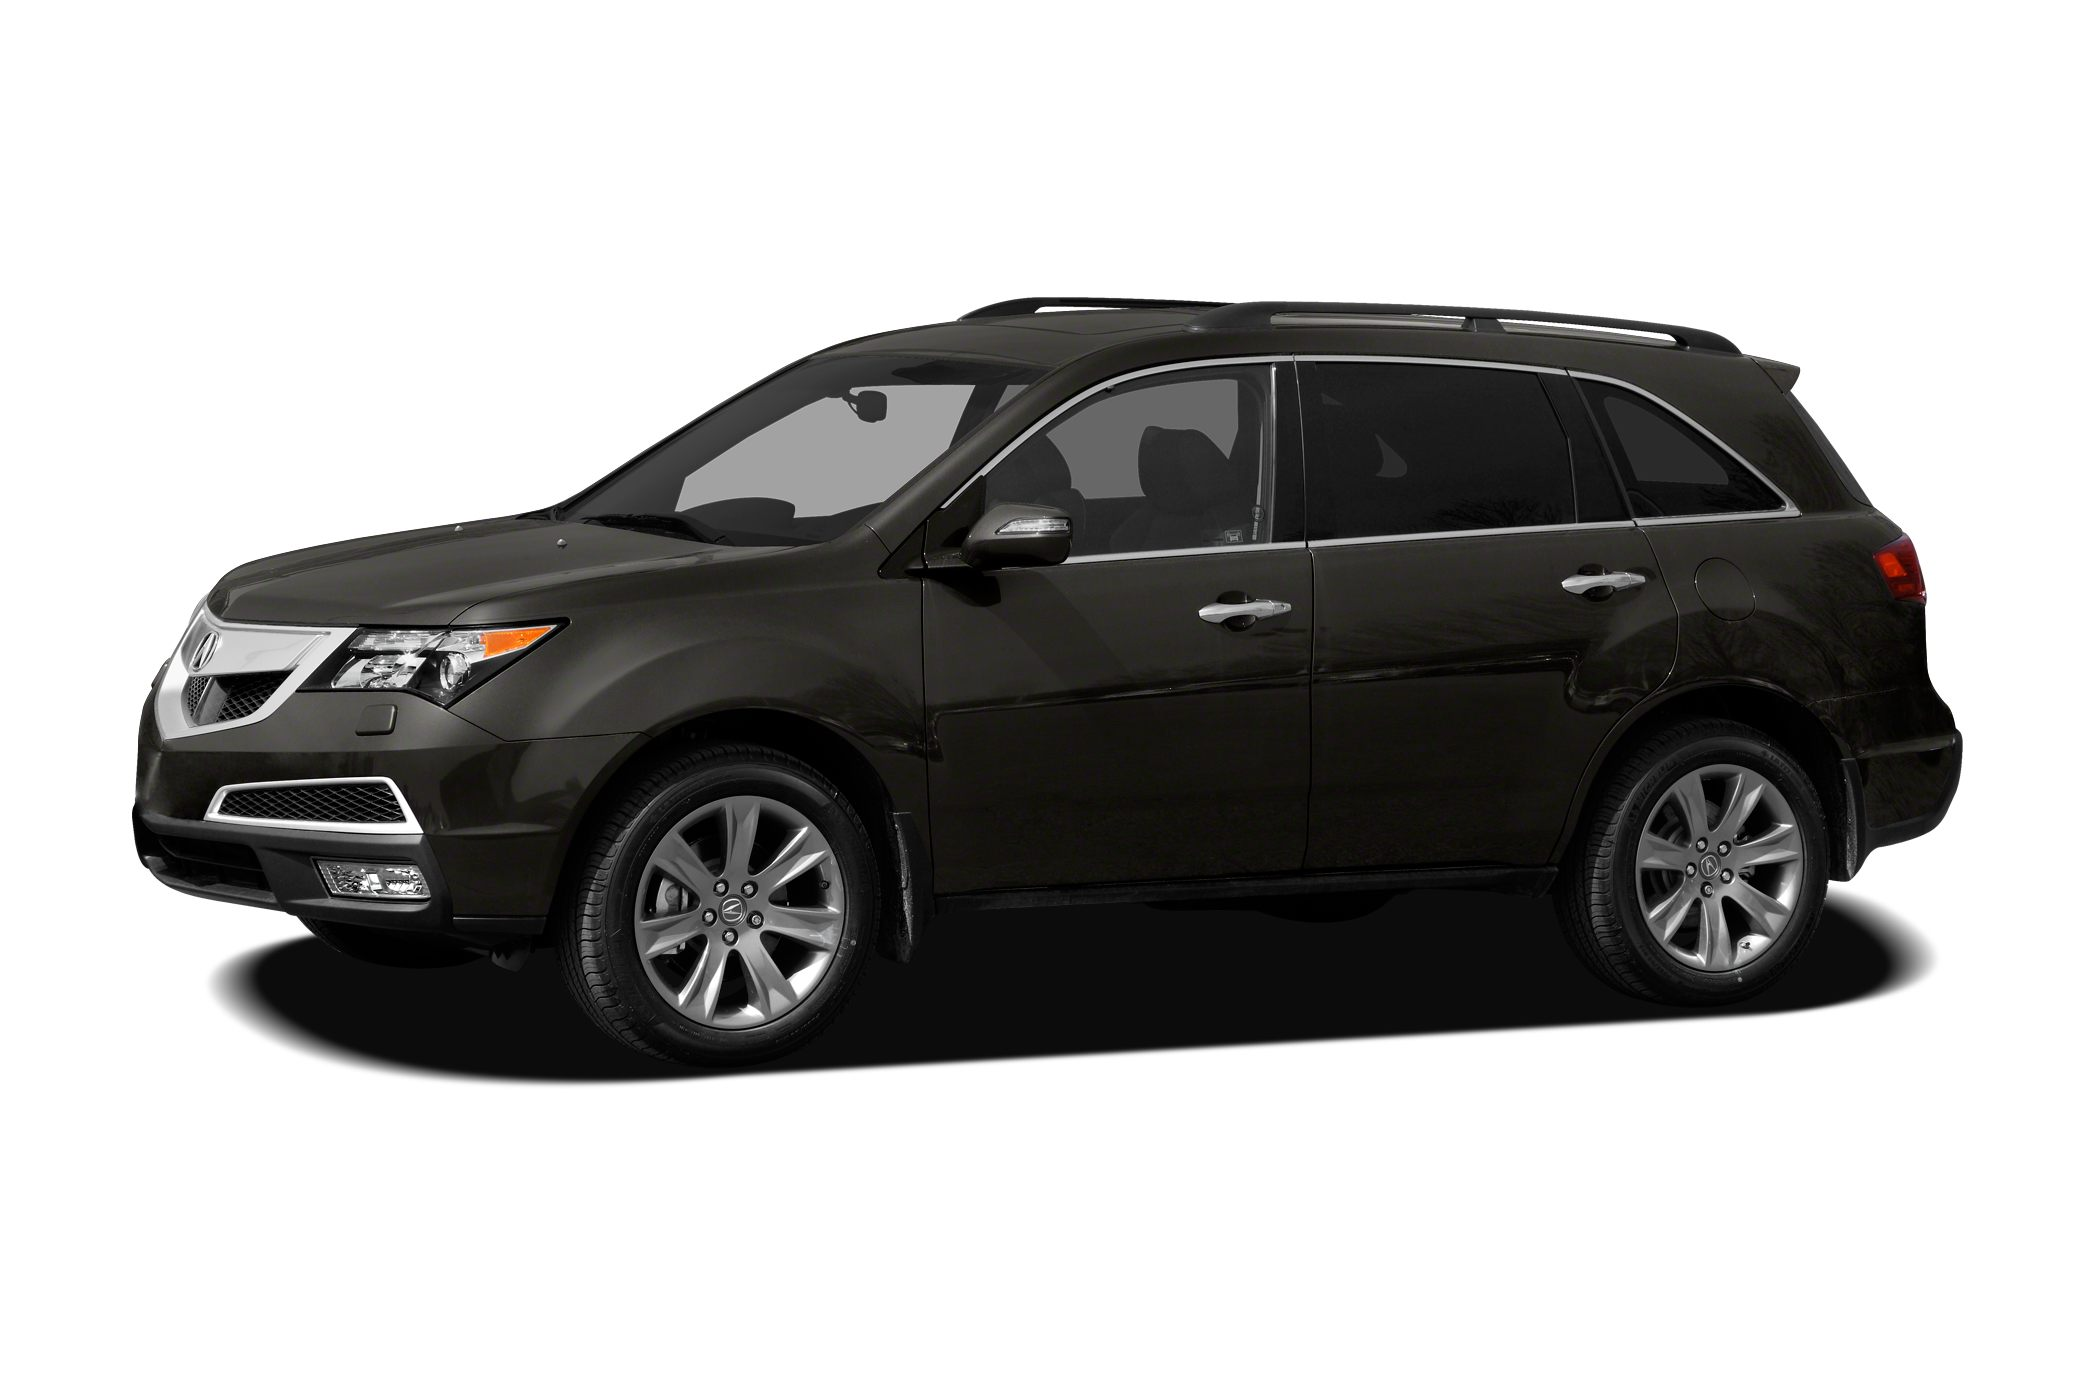 2011 Acura MDX 37 Technology OUR PRICESYoure probably wondering why our prices are so much lowe